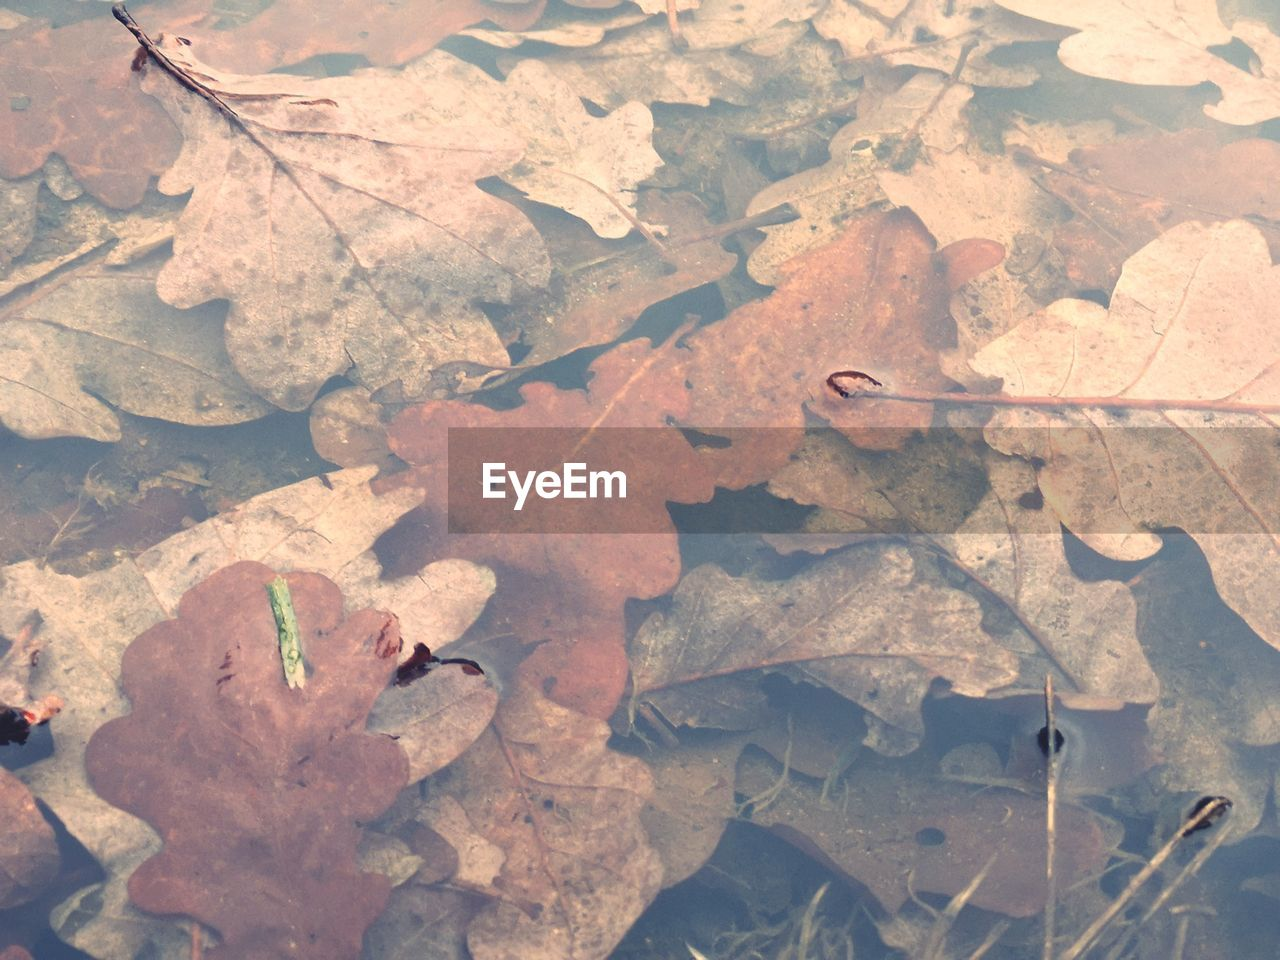 leaf, plant part, dry, autumn, leaves, change, nature, no people, day, high angle view, close-up, falling, full frame, vulnerability, fragility, outdoors, land, water, beauty in nature, maple leaf, natural condition, dried, fall